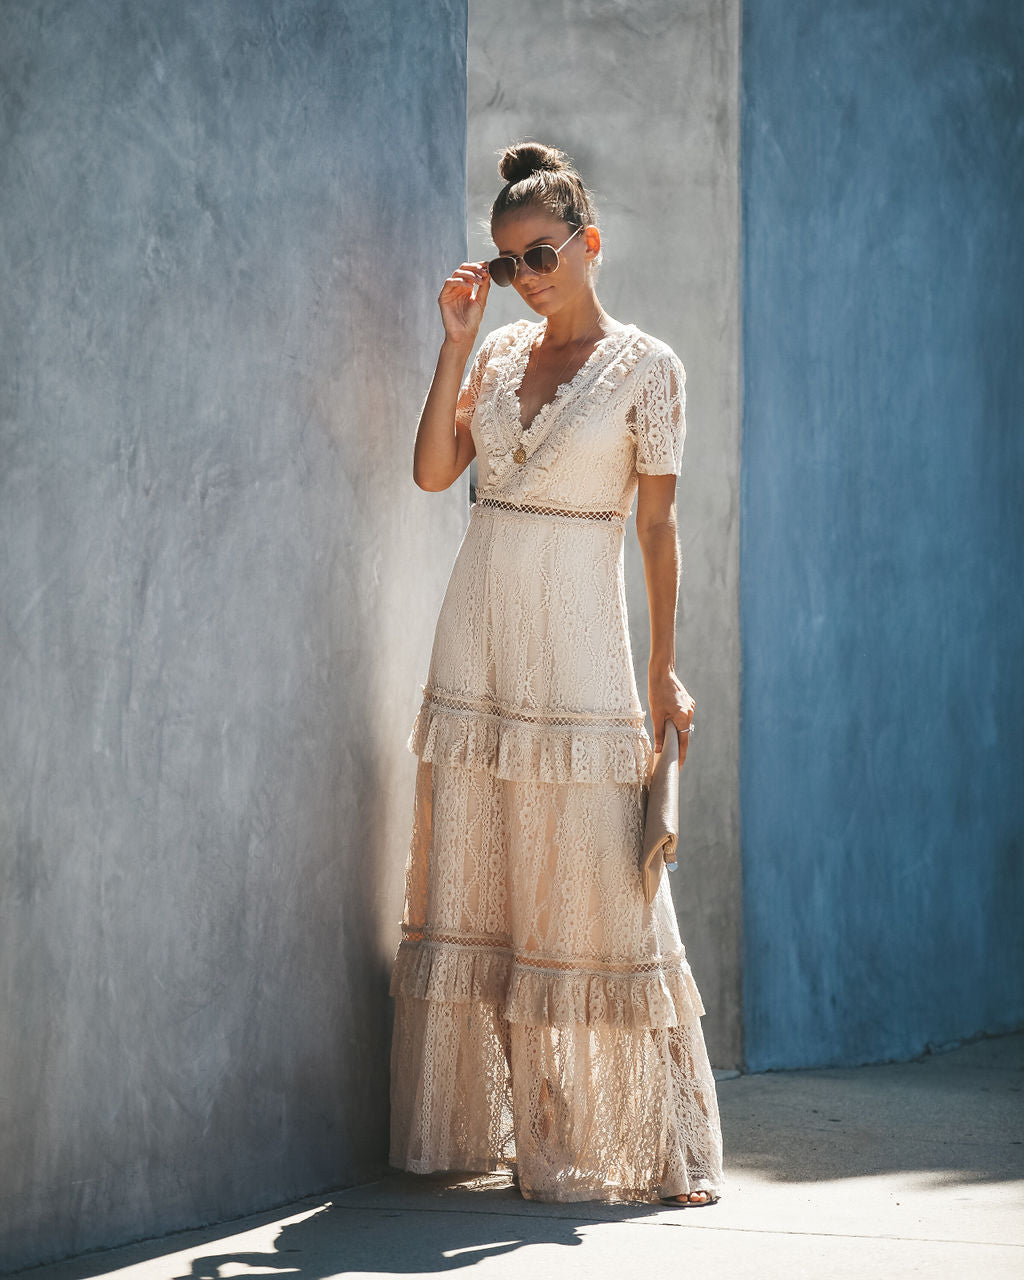 96957a05280 Detail Product. ← Home - DRESSES - Endless Tiered Lace Maxi ...